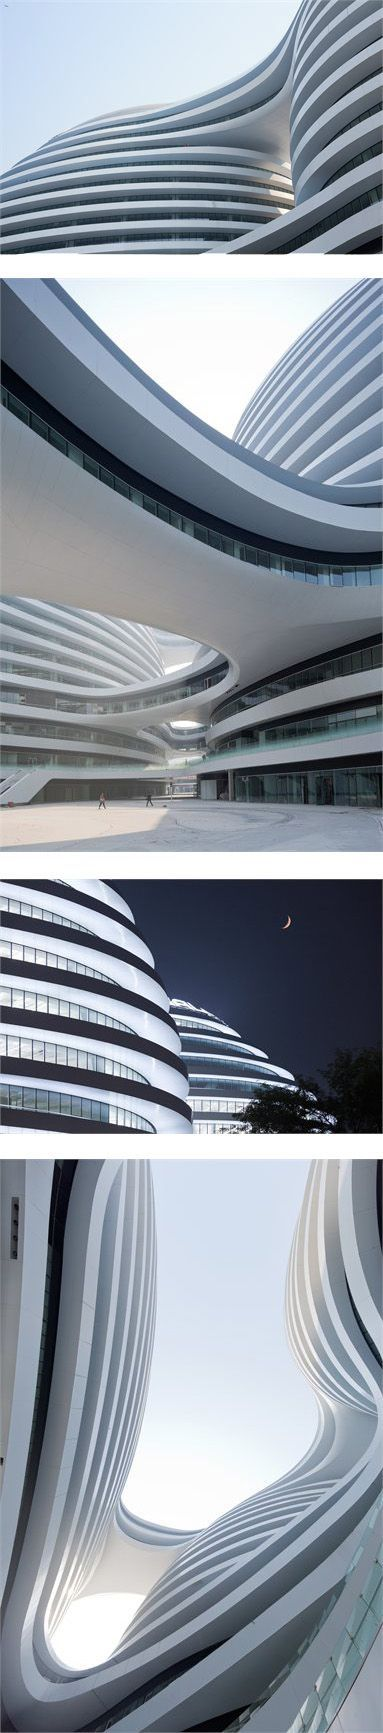 The Galaxy SOHO by Zaha Hadid Architects #architecture #building #futuristicarchitecture